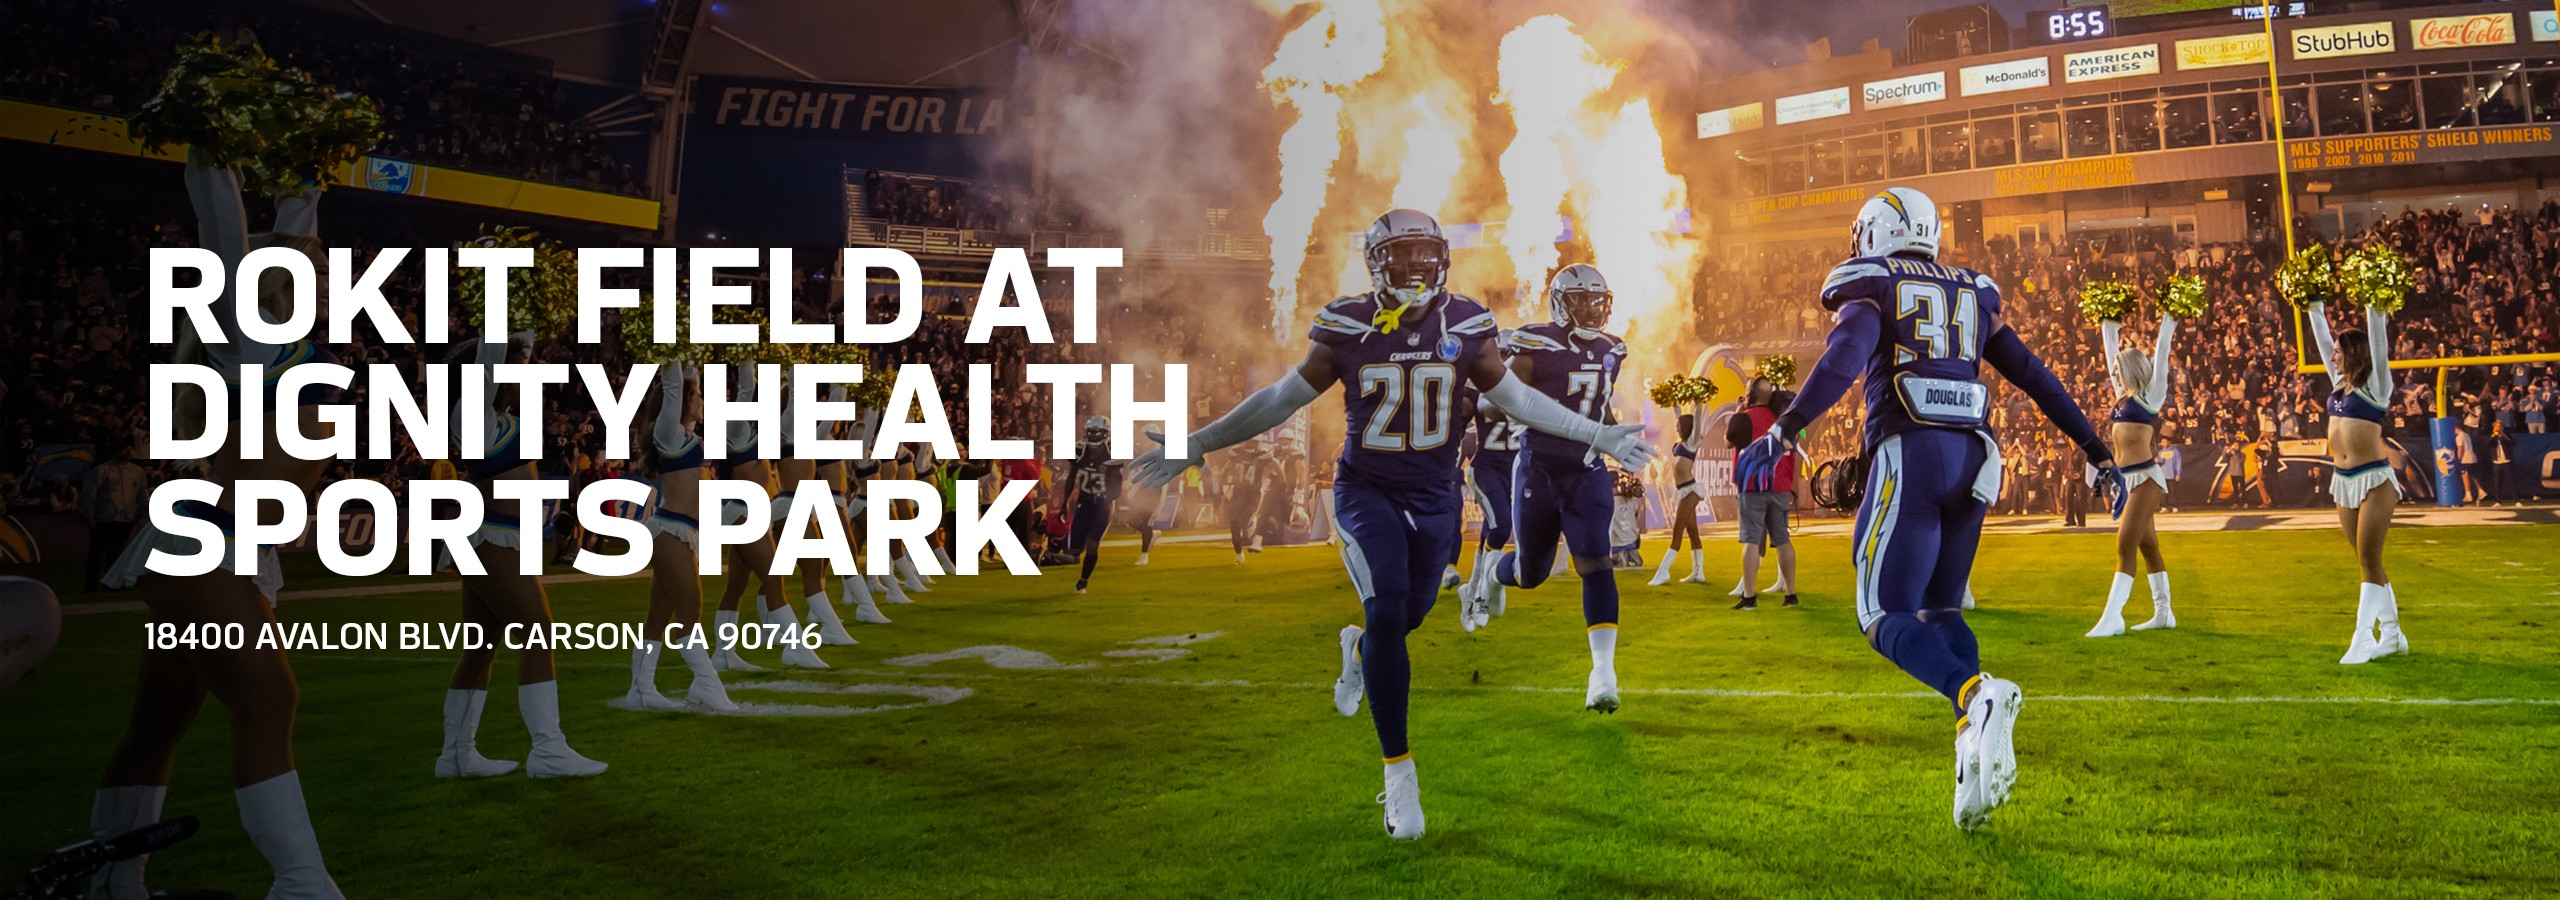 ROKiT Field at Dignity Health Sports Park | Los Angeles Chargers